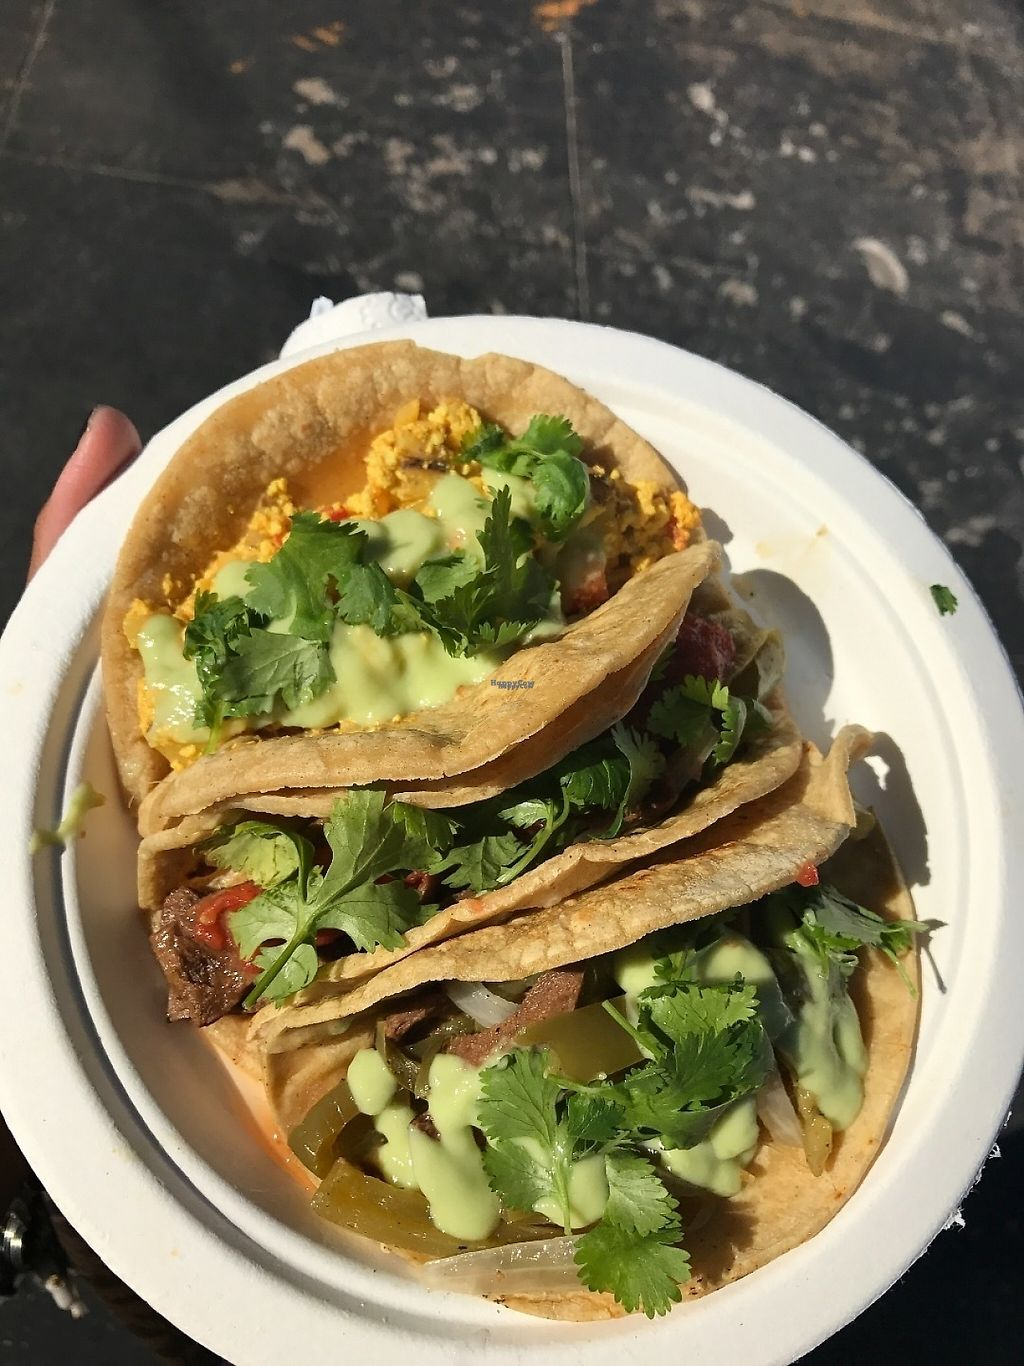 "Photo of Mi Vegana Madre - Food Truck  by <a href=""/members/profile/Tigra220"">Tigra220</a> <br/>breakfast taco assortment from the farmer's market <br/> March 11, 2017  - <a href='/contact/abuse/image/88440/235054'>Report</a>"